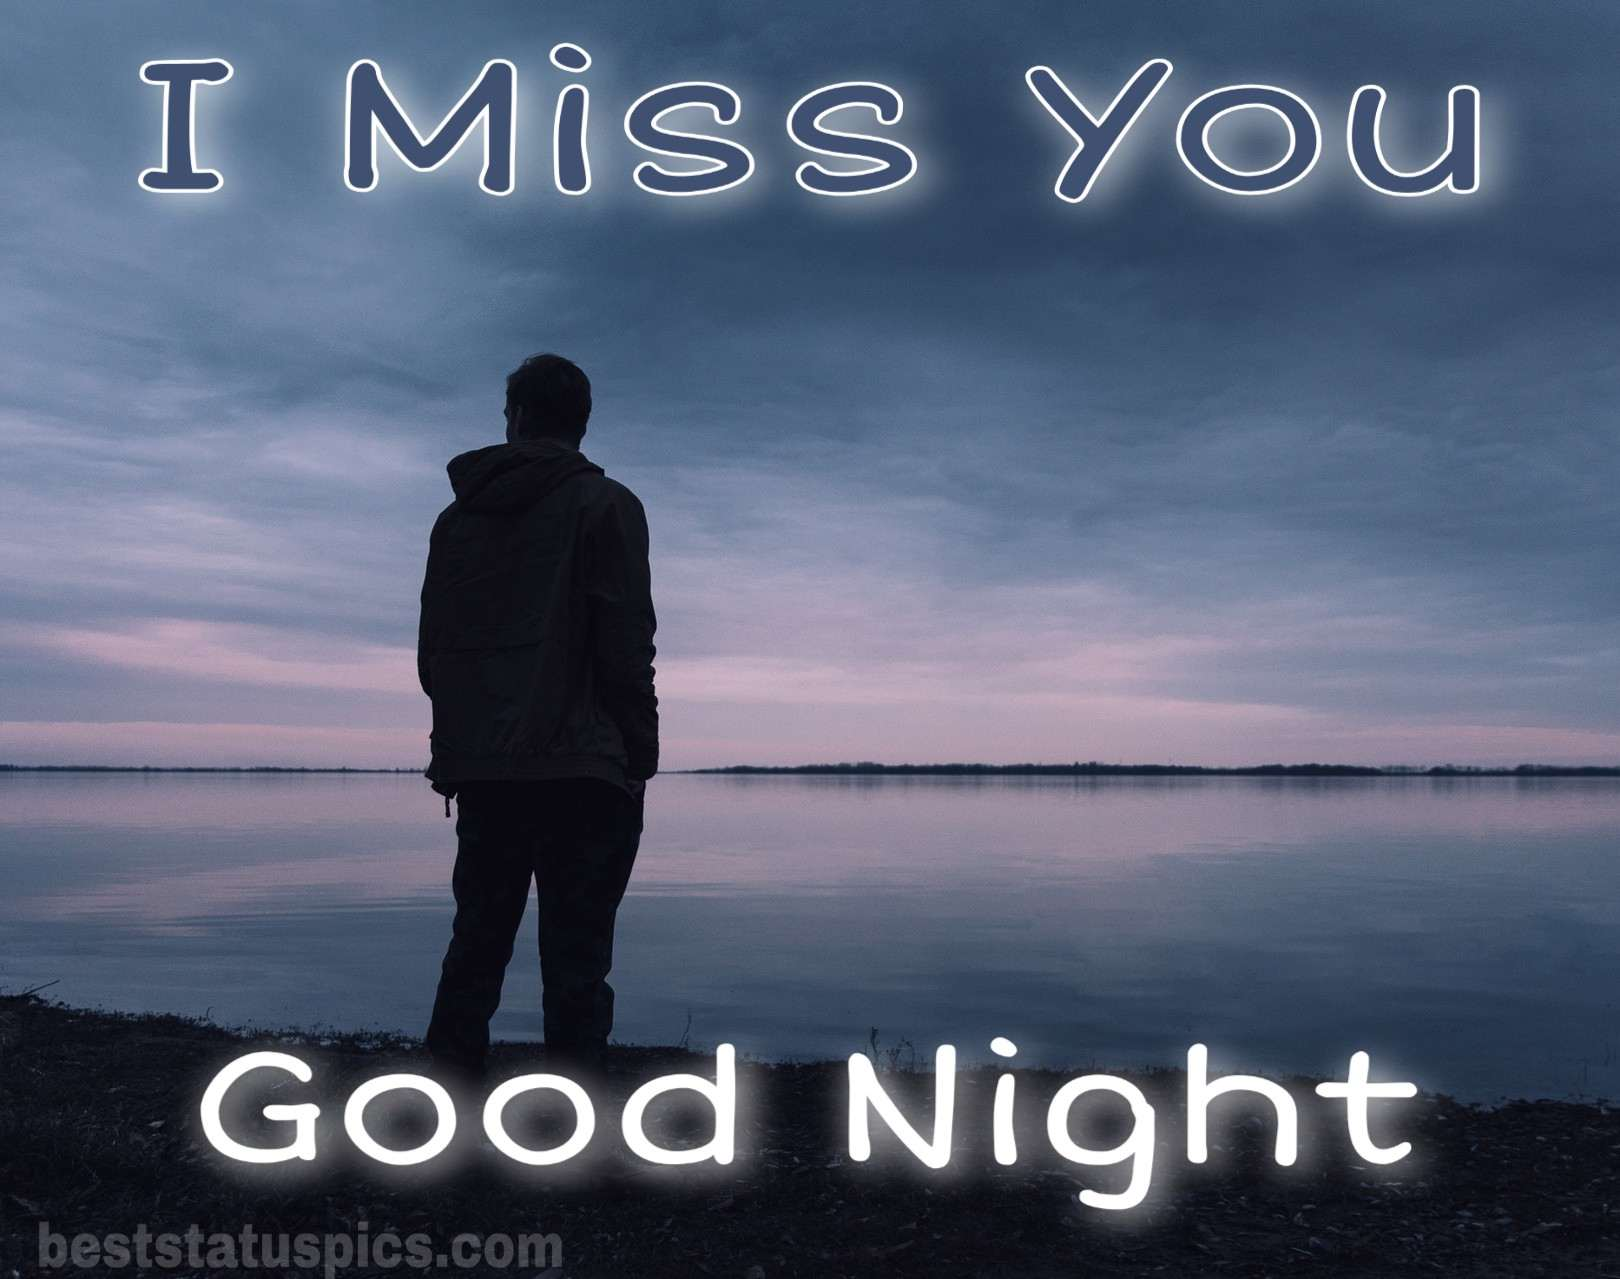 51 Good Night I Miss You Images Photos With Love Best Status Pics